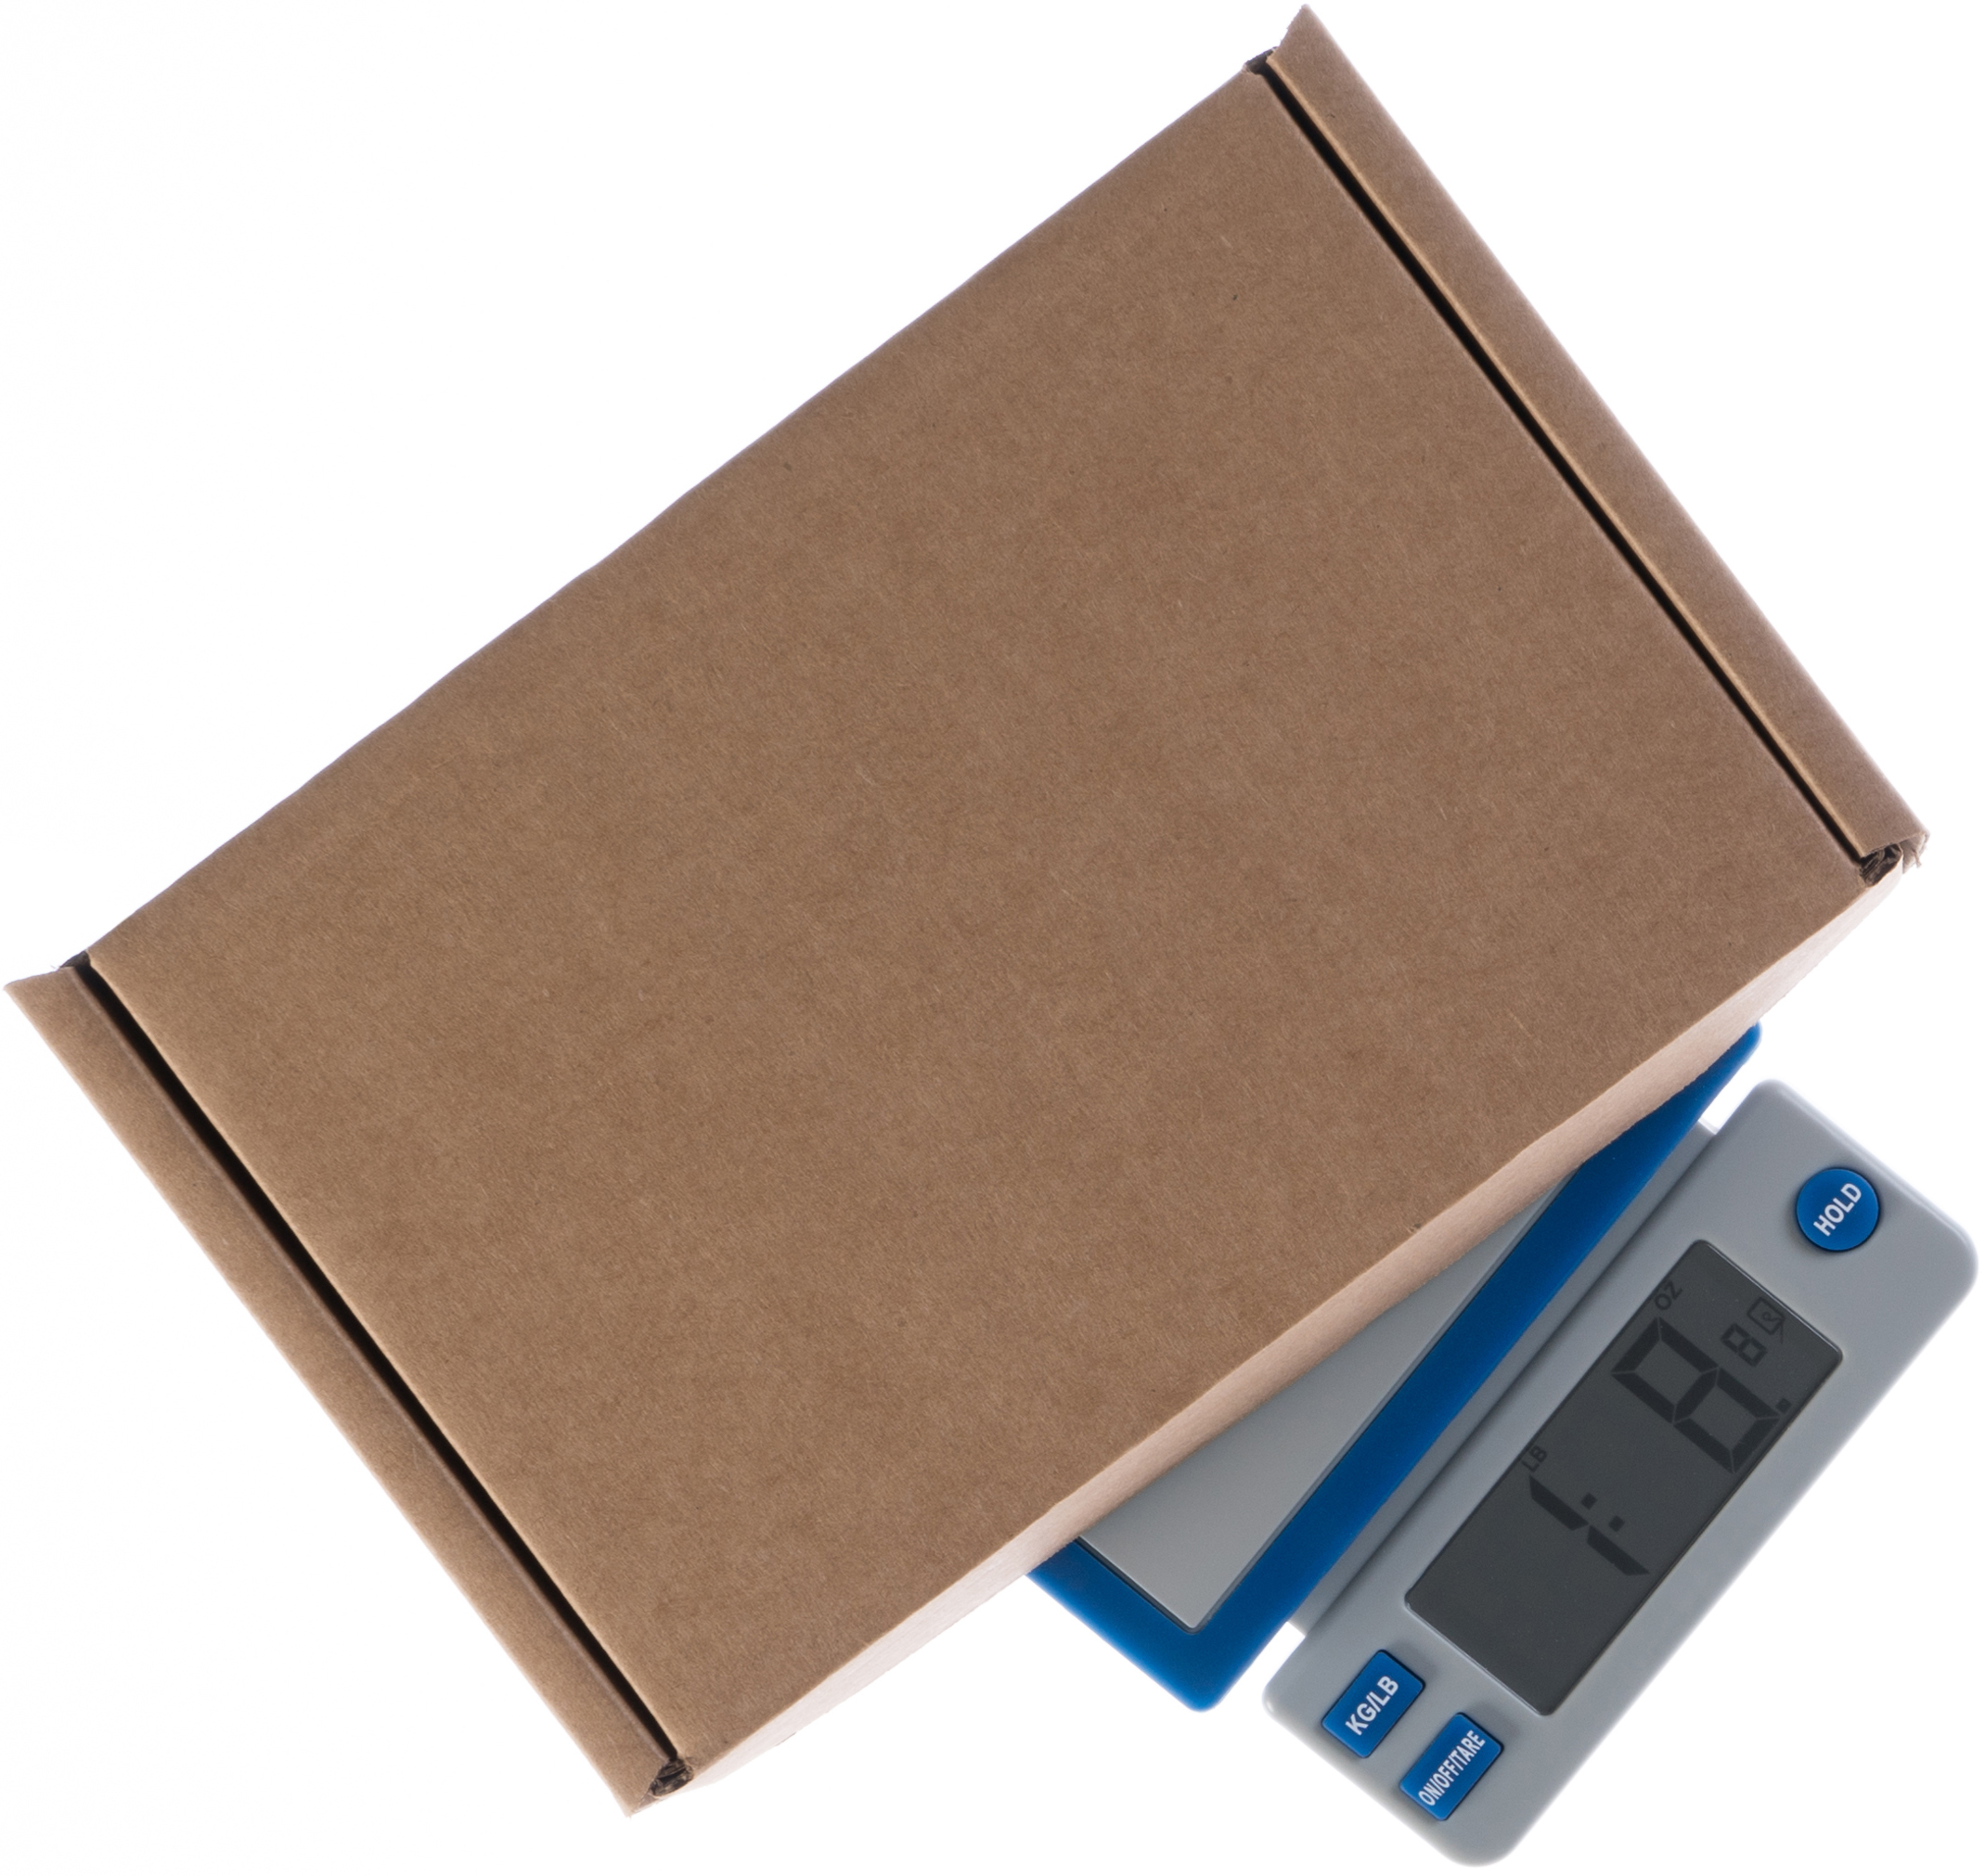 Shipping scale with a cardboard box